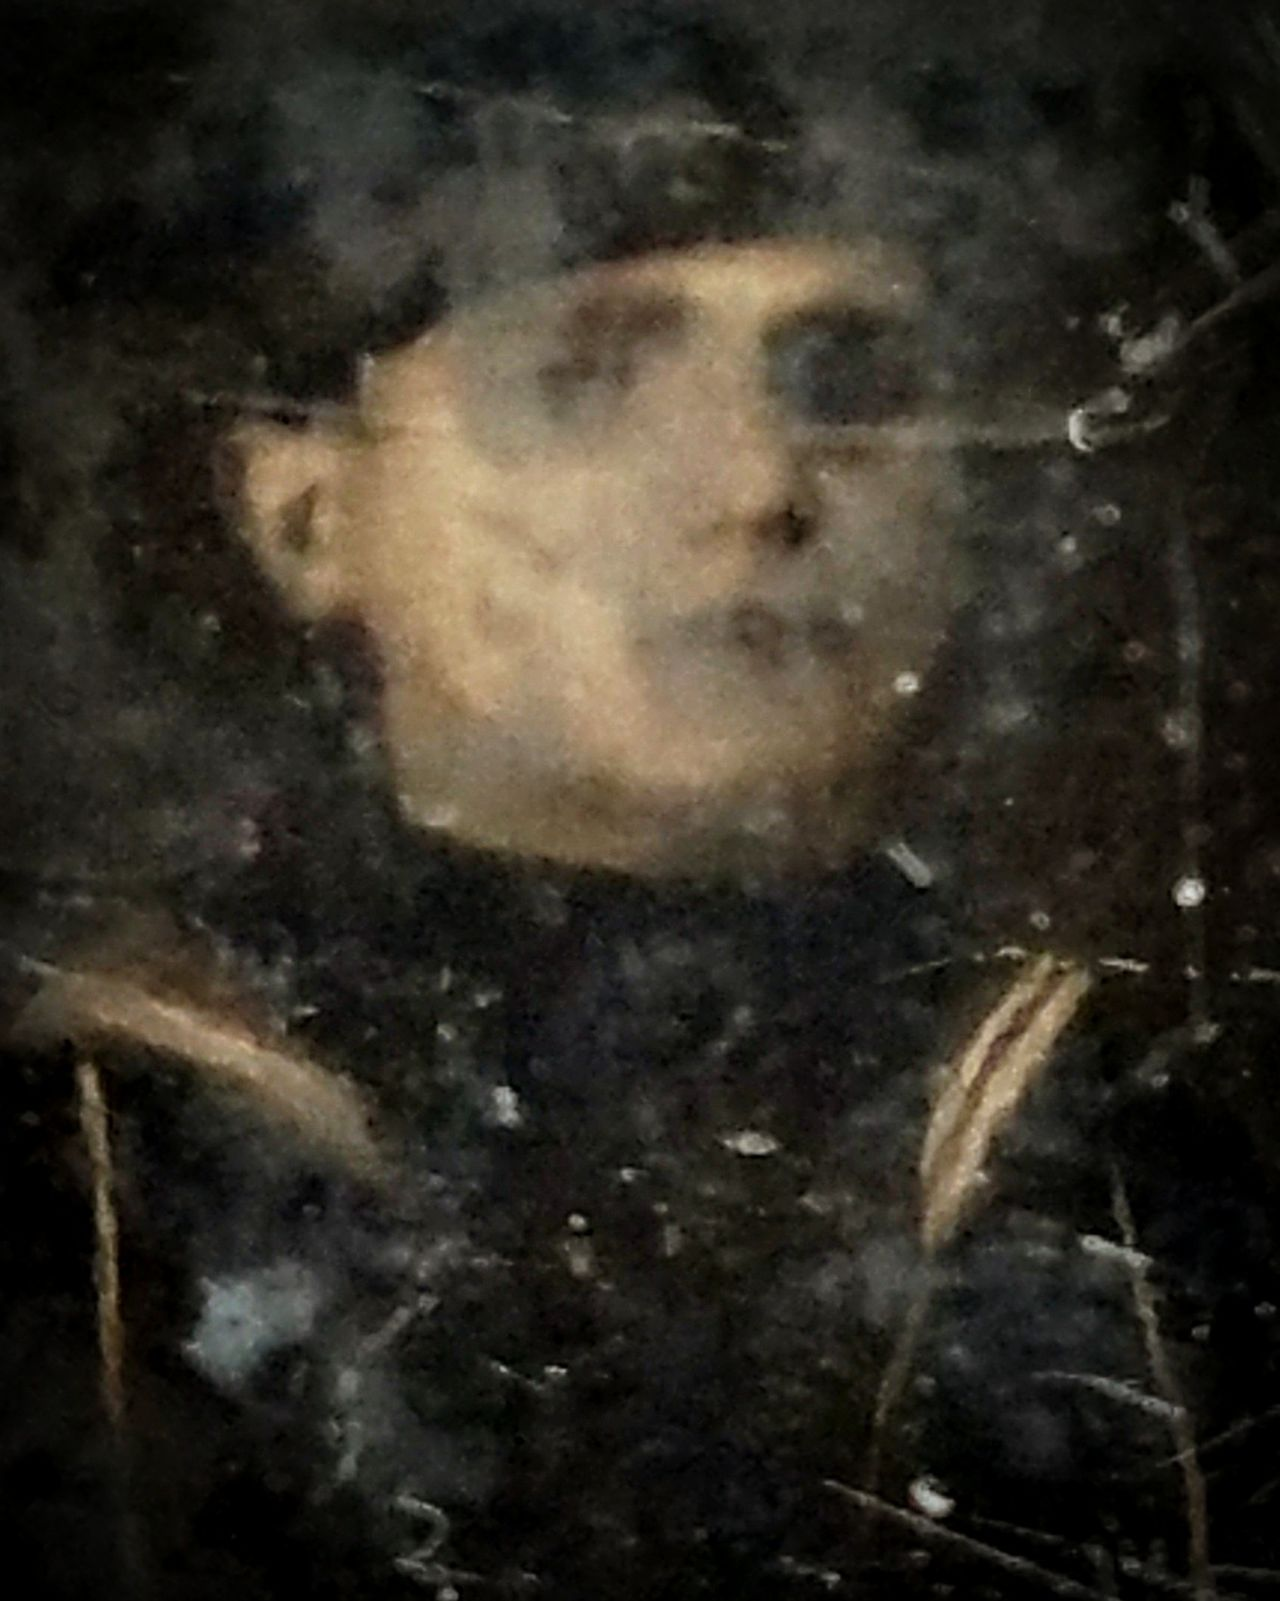 Abstract One Person People Adult Adults Only Close-up Day Dark Antique Photography Old Photo Old Photo Photograph Oddities Oddity Curiosity Ghostly Mysterious Apparition Eerie Eerie Beautiful Eerie Photos Ghost Ghostly Face Ghostly Apparition